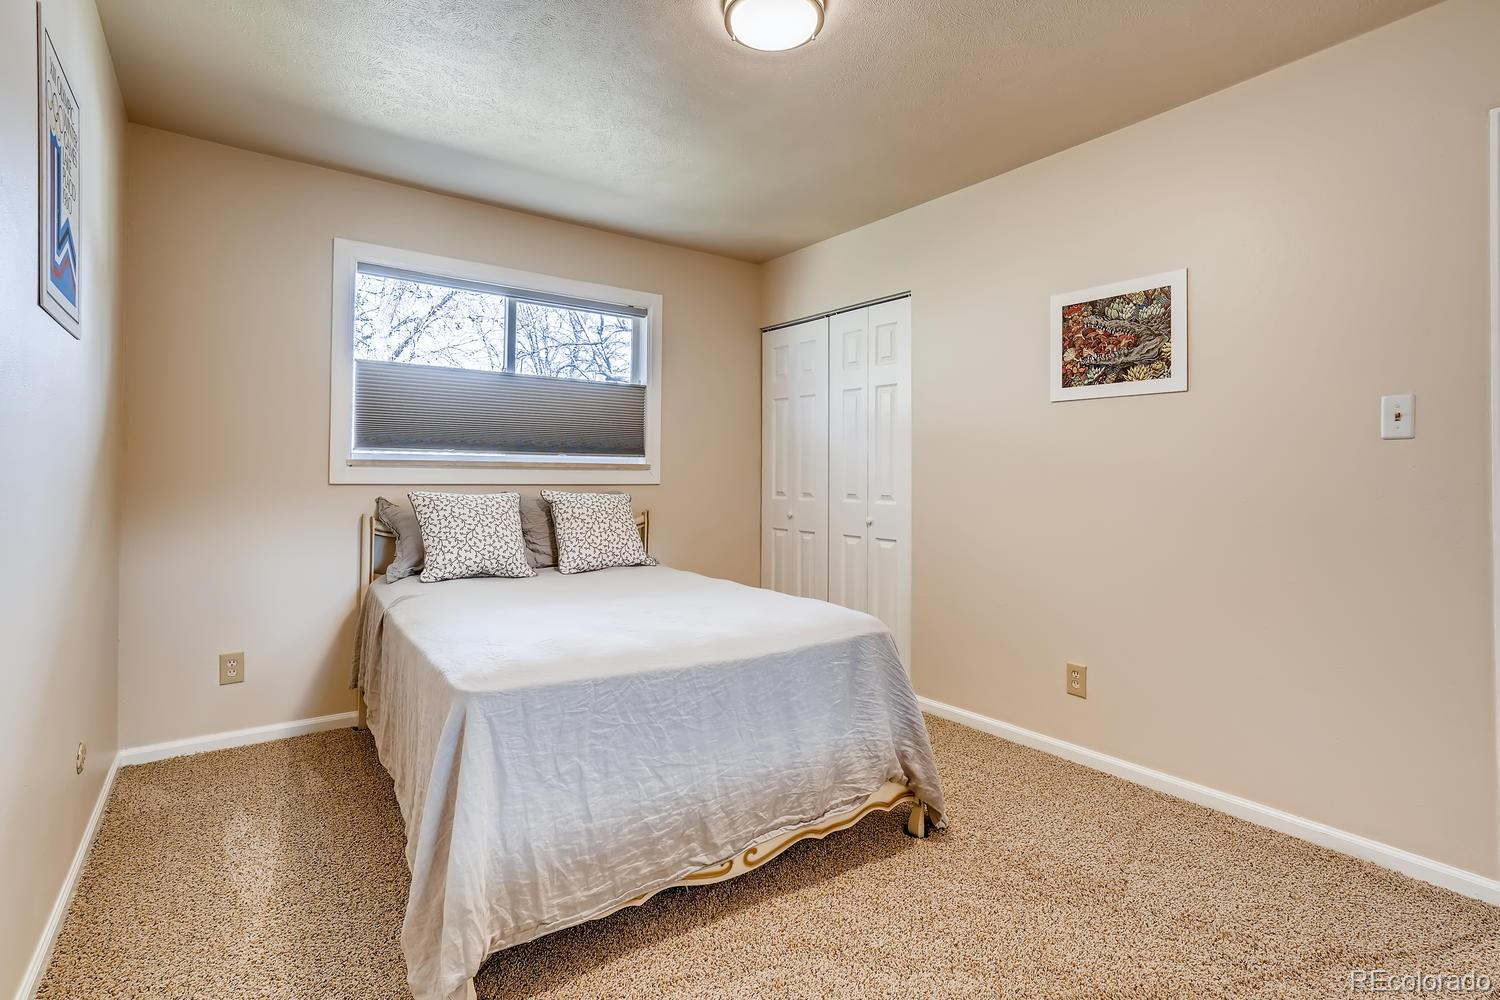 MLS# 4216362 - 17 - 6872 Marshall Street, Arvada, CO 80003